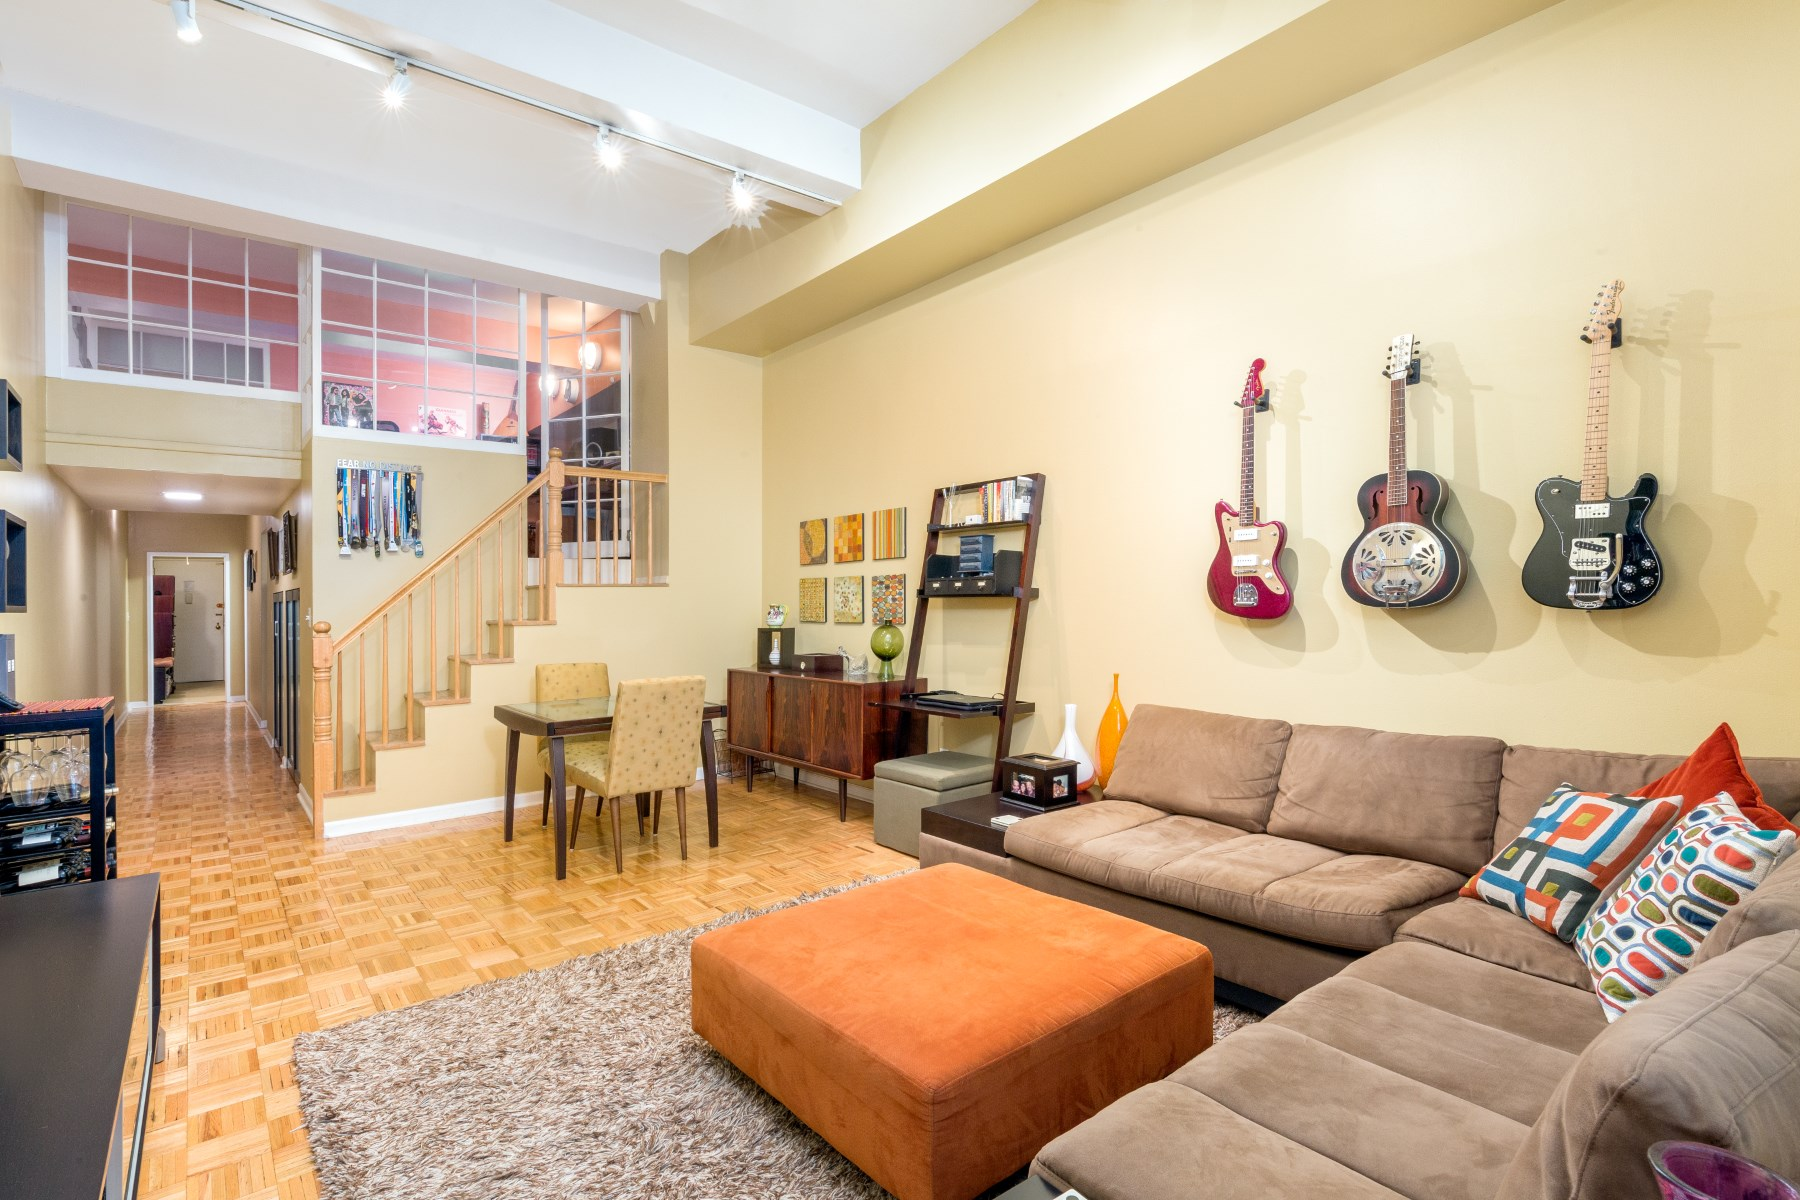 Apartment for Sale at LUXURY & LOFT LIVING AT IT'S BEST 310 East 46th Street Apt 4F Upper East Side, New York, New York, 10017 United States